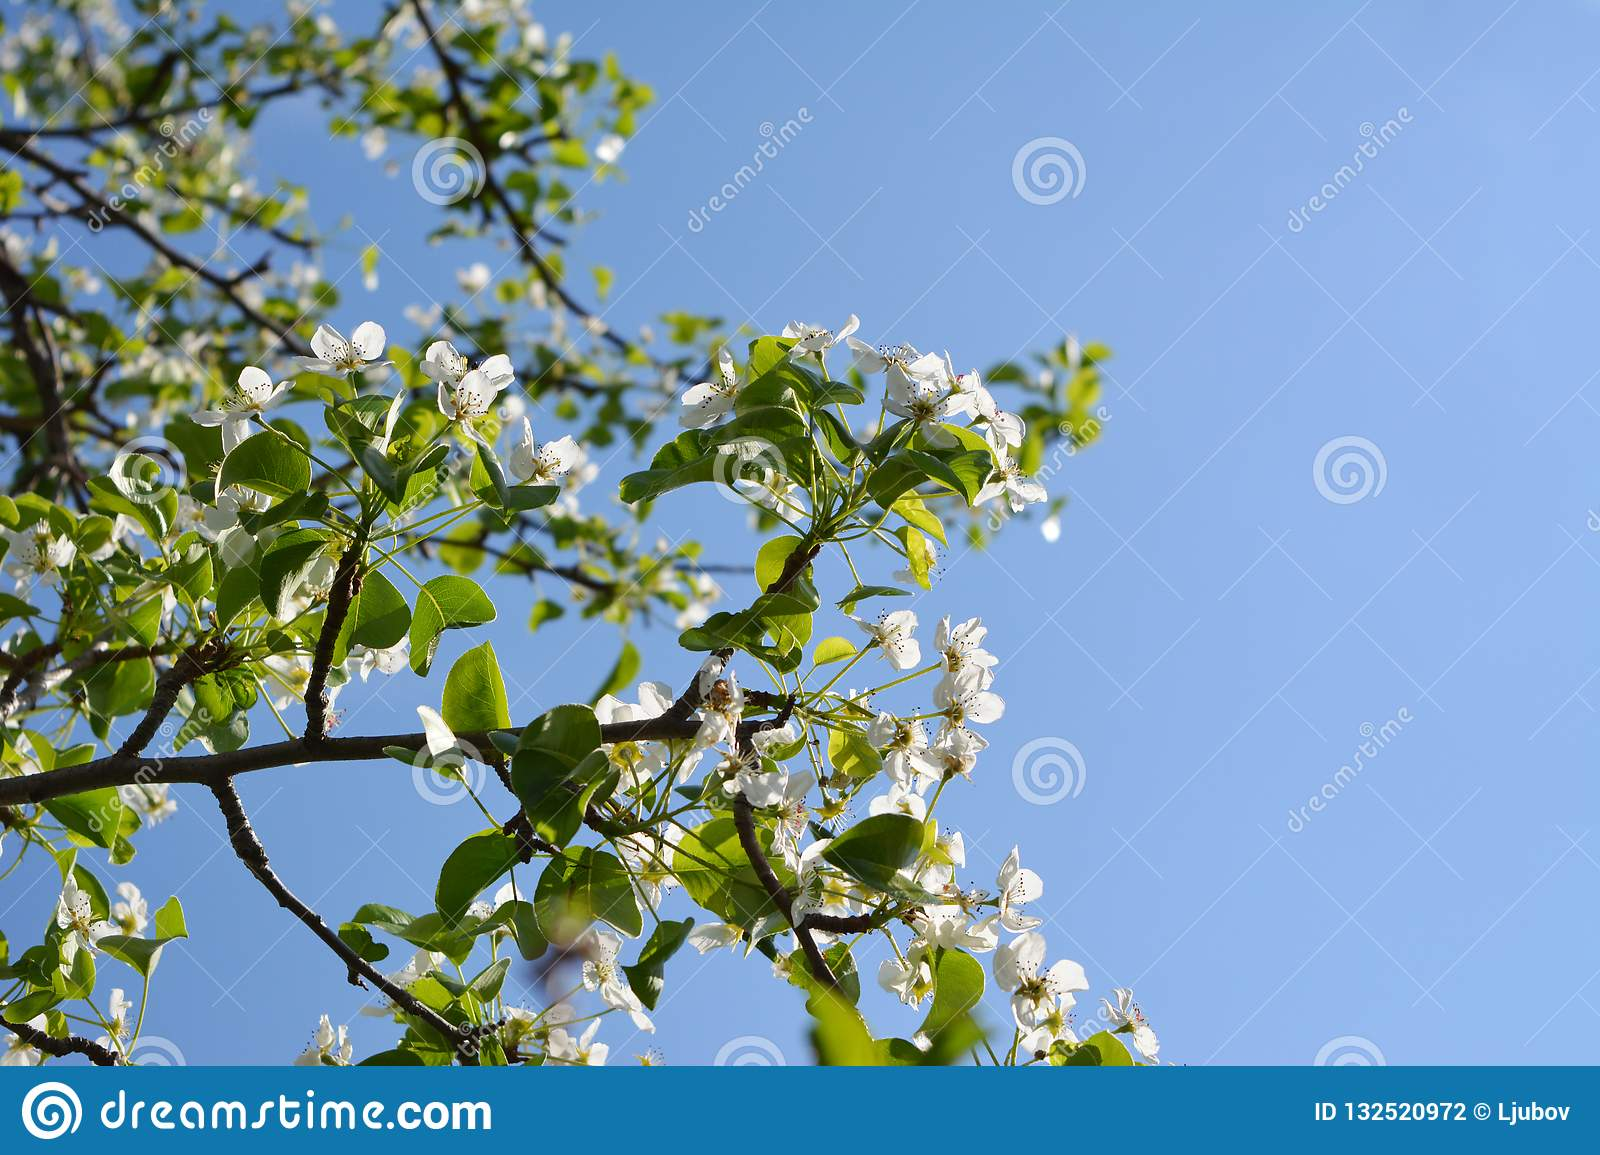 Blooming pear tree. Branches with beautiful flowers against clear blue sky.